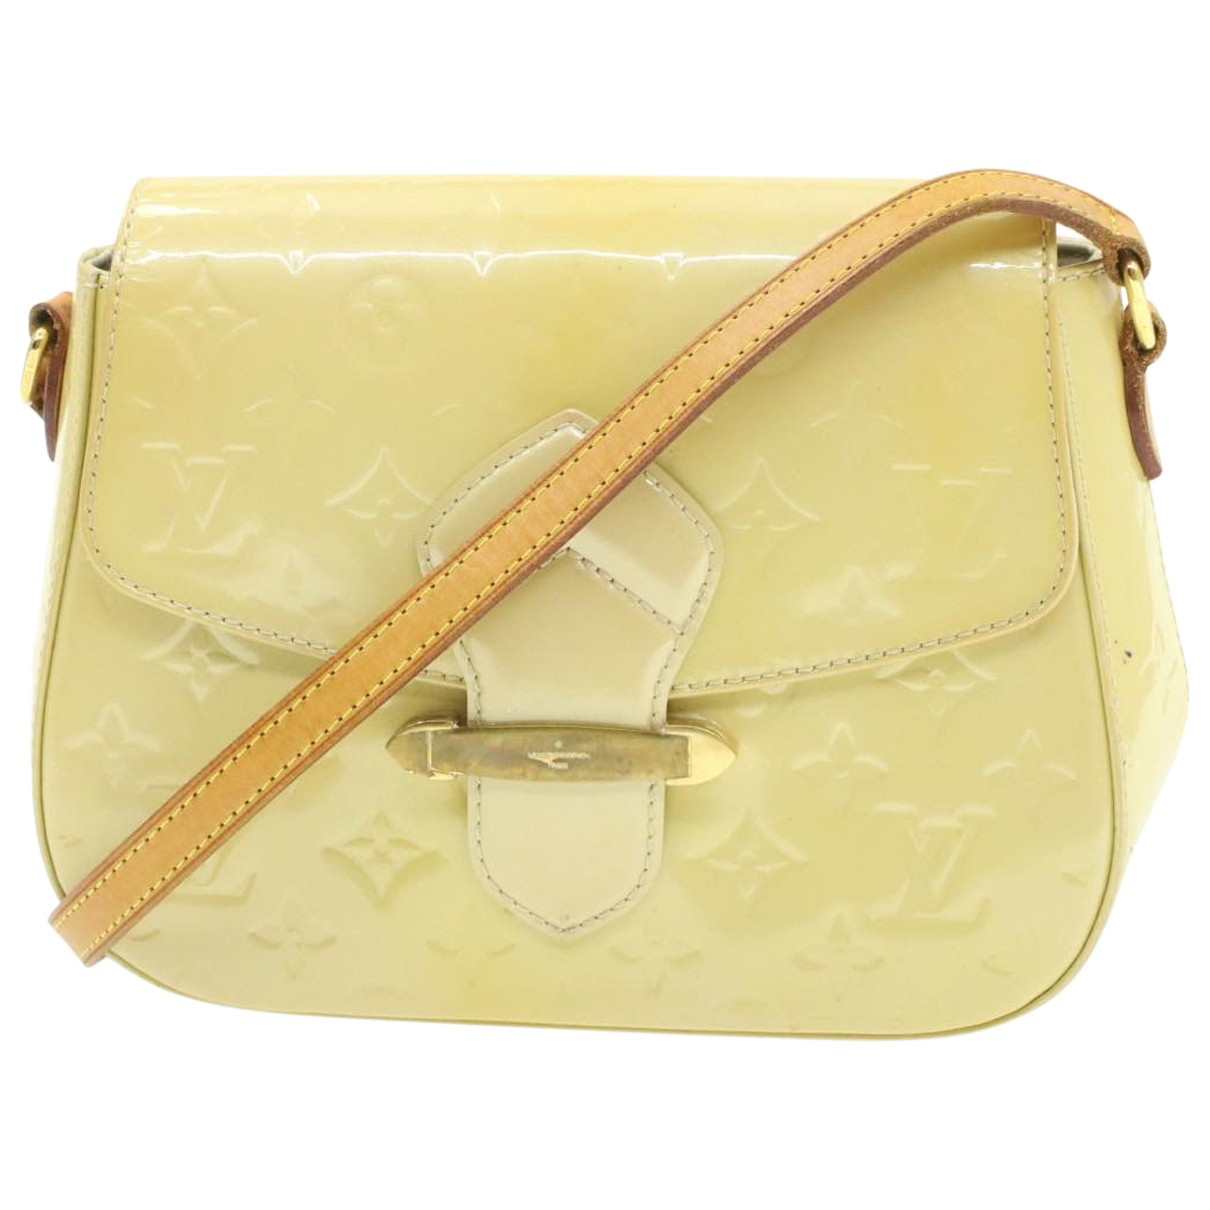 Bolso Bellflower de Charol Louis Vuitton